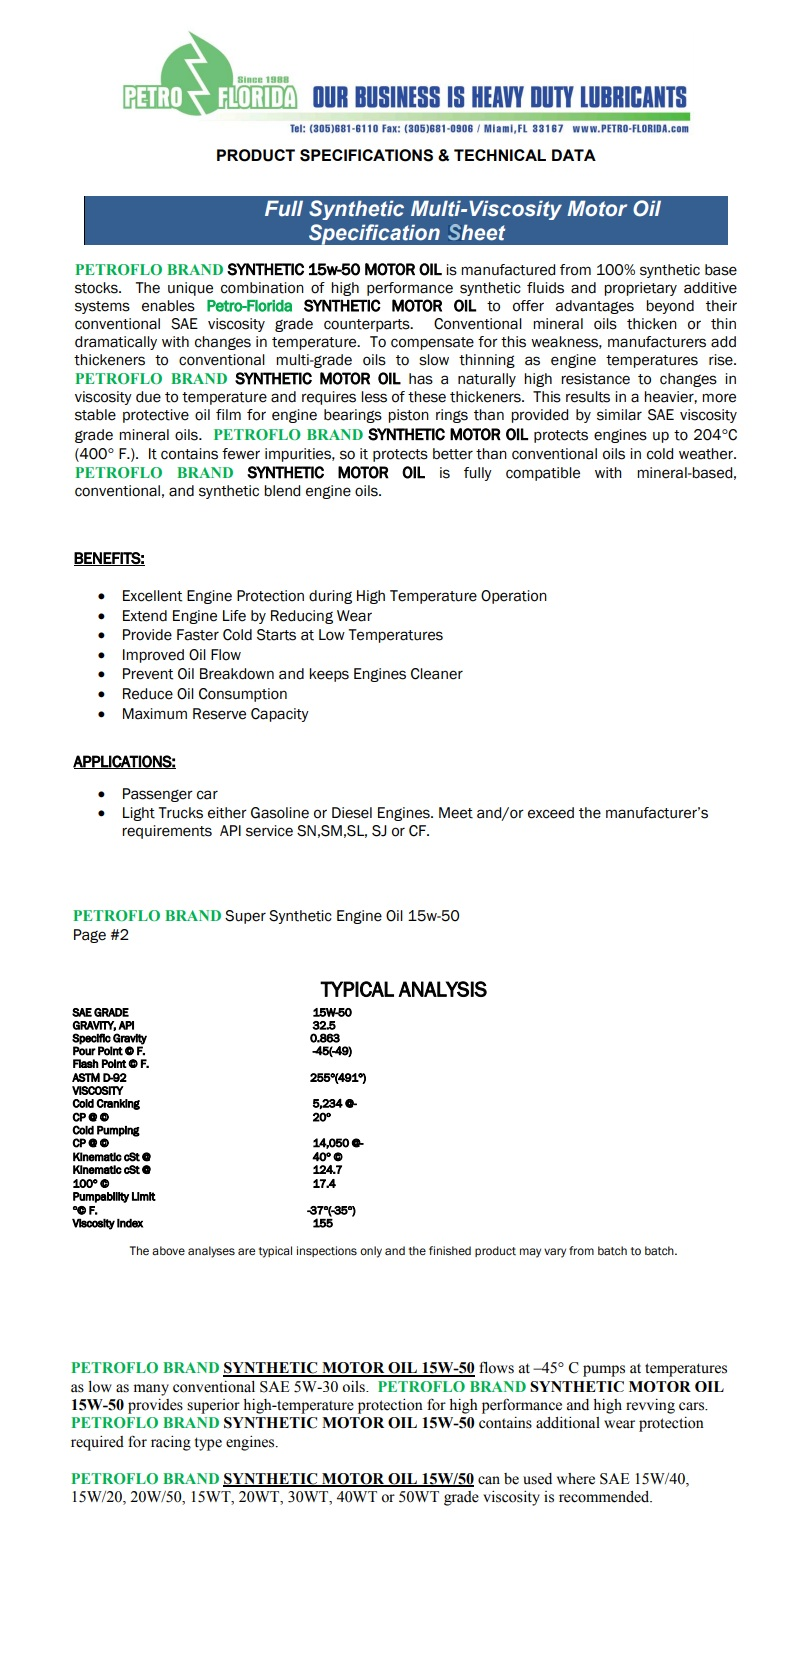 full-synthetic-multi-viscosity-motor-oil-specification-sheet